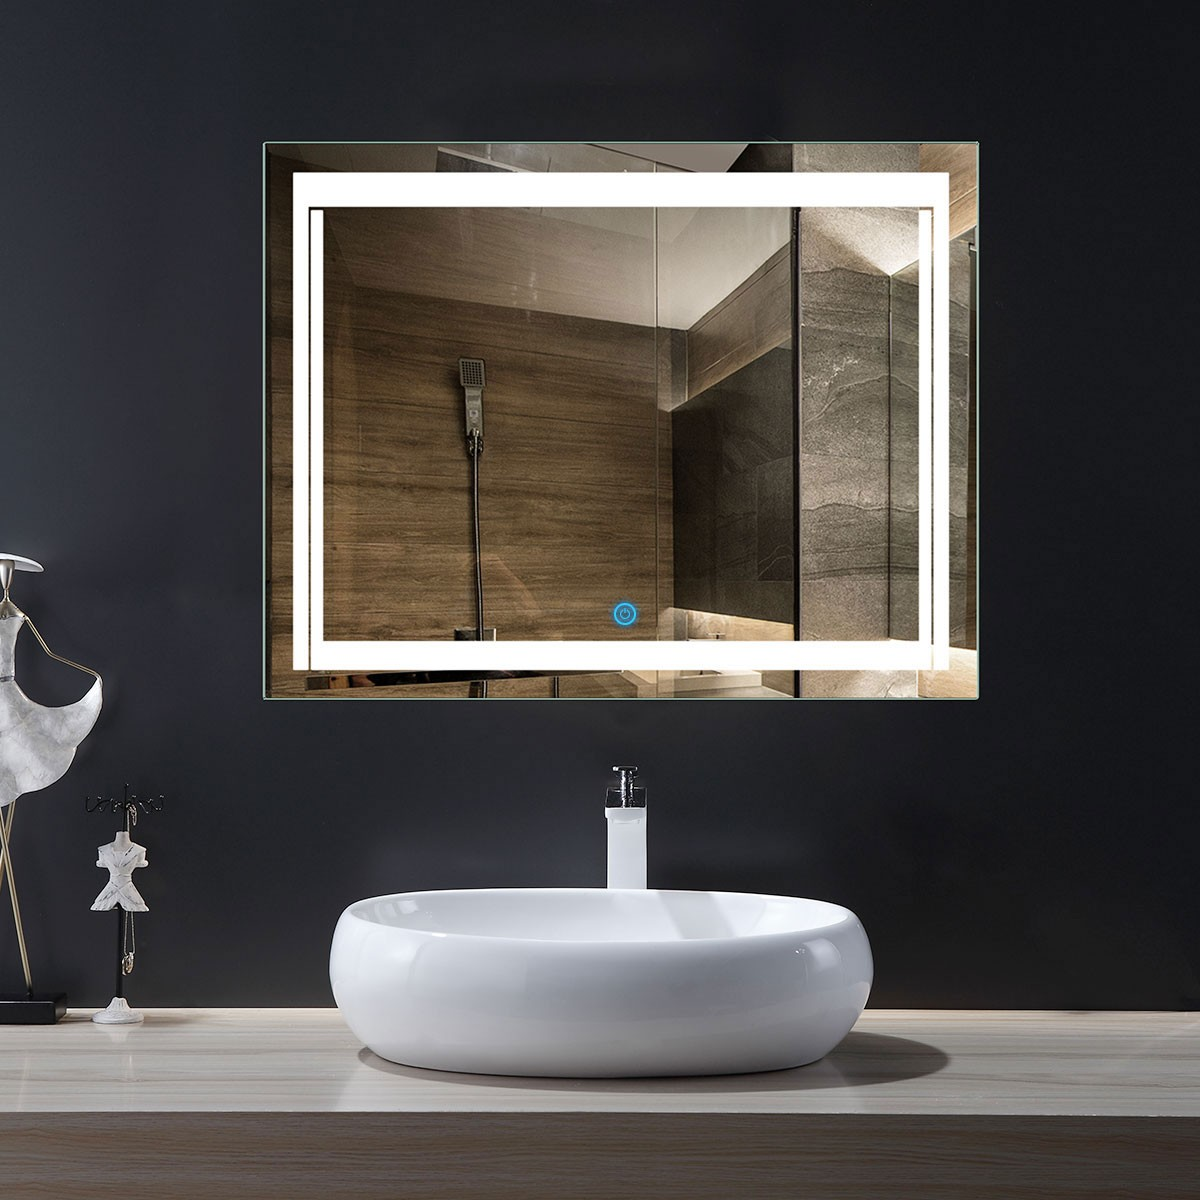 36 x 28 In Horizontal LED Bathroom Mirror with Touch Button (DK-OD-CK150-L)